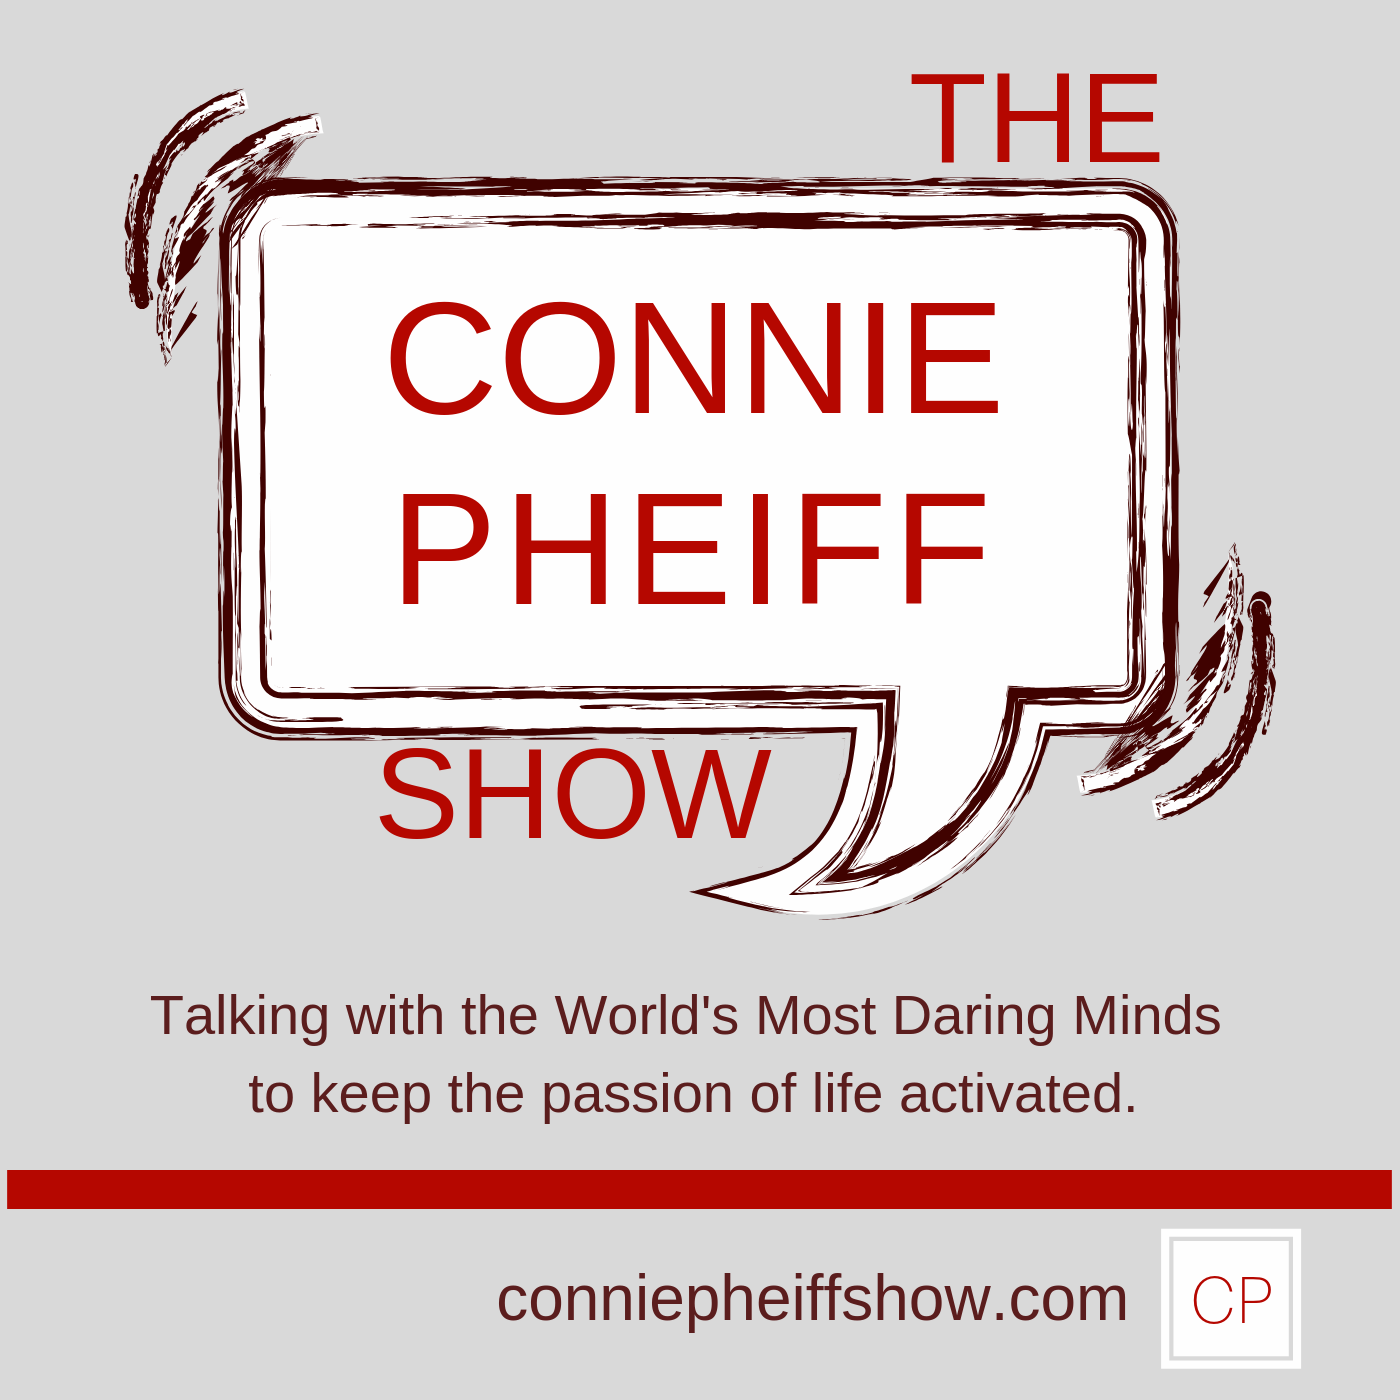 Connie Pheiff Show